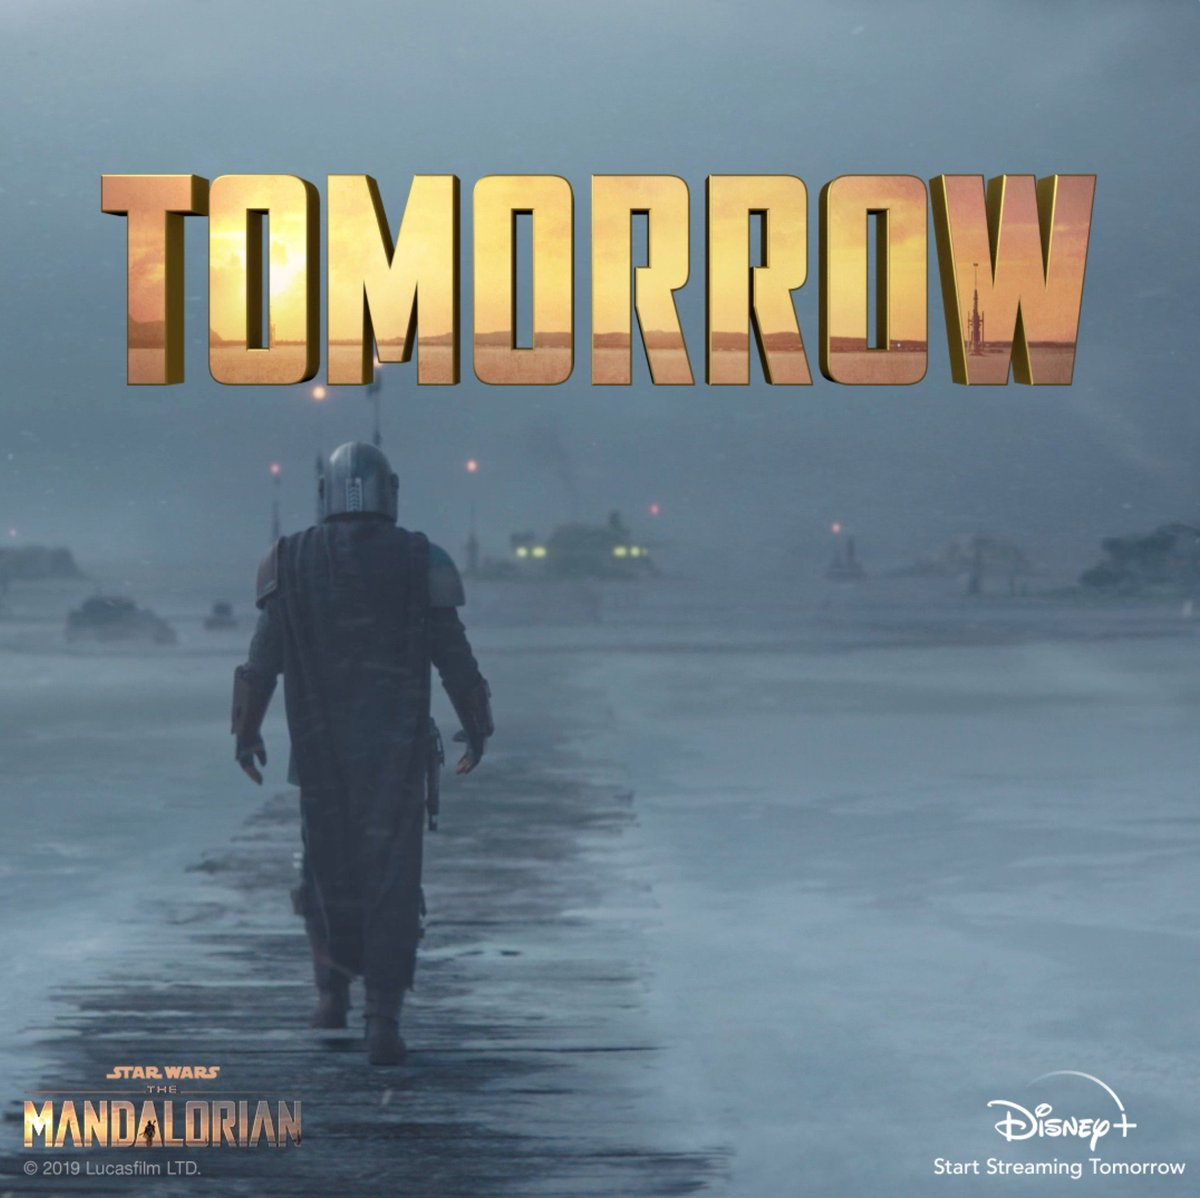 He arrives tomorrow. Start streaming #TheMandalorian, only on #DisneyPlus.